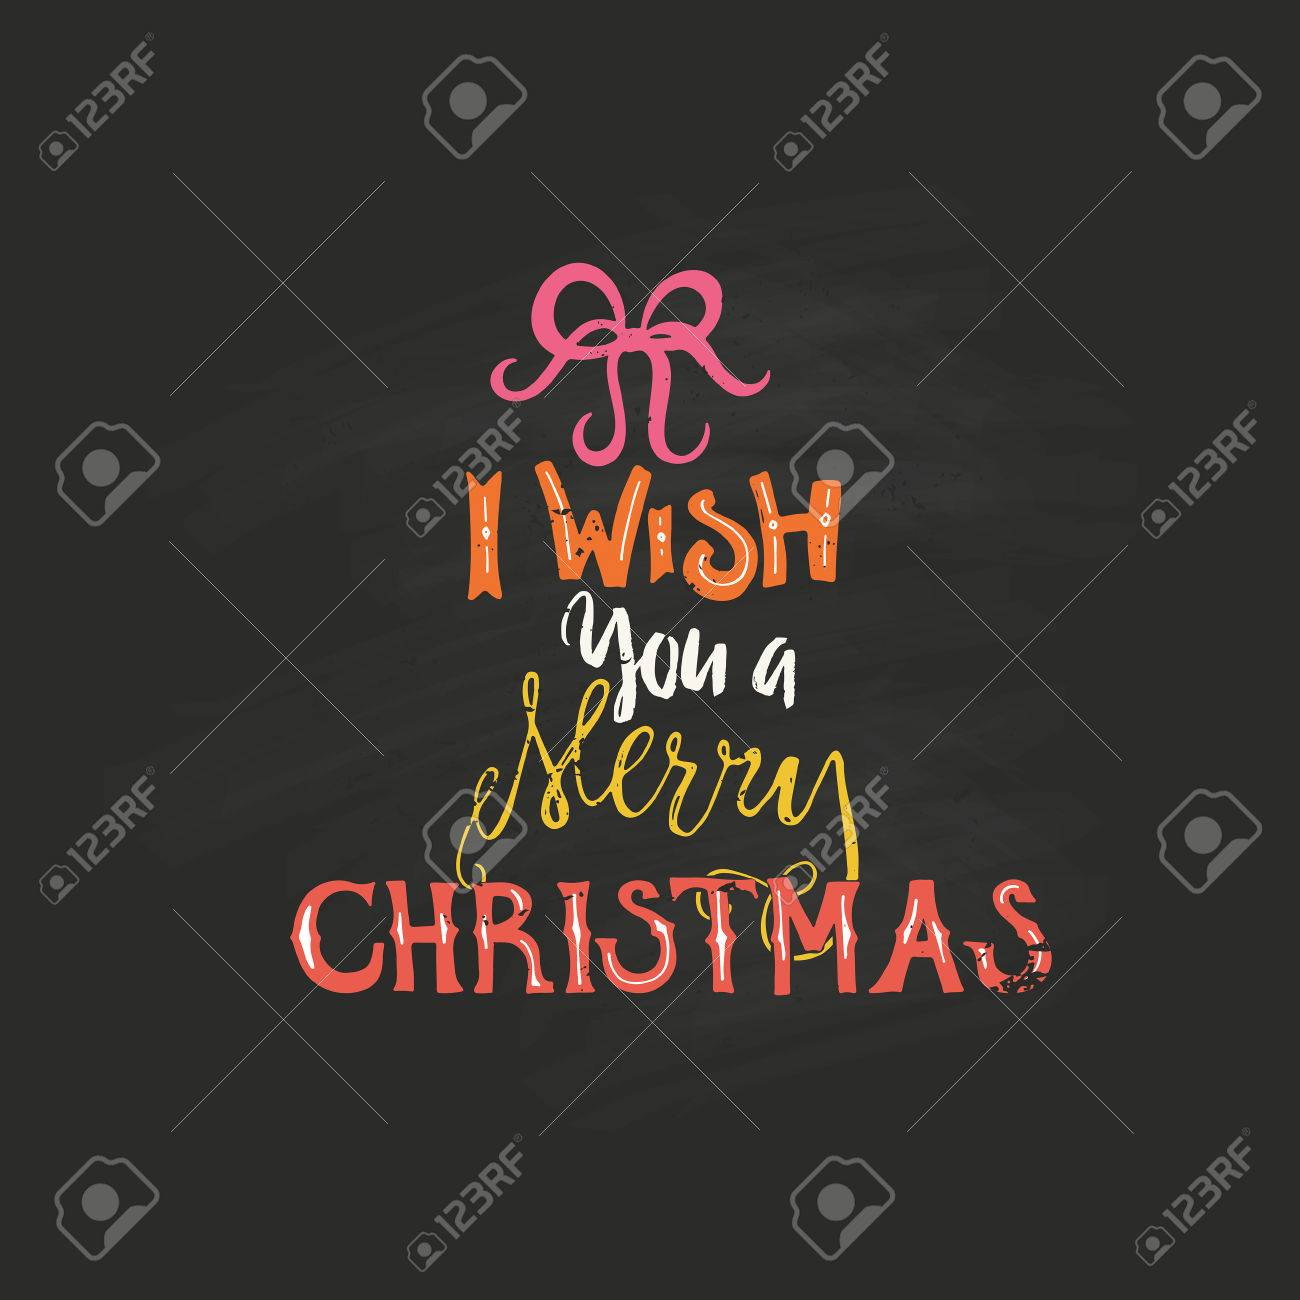 Weihnachtskarten Clipart.Merry Christmas Lettering Vector Clipart For Christmas Cards